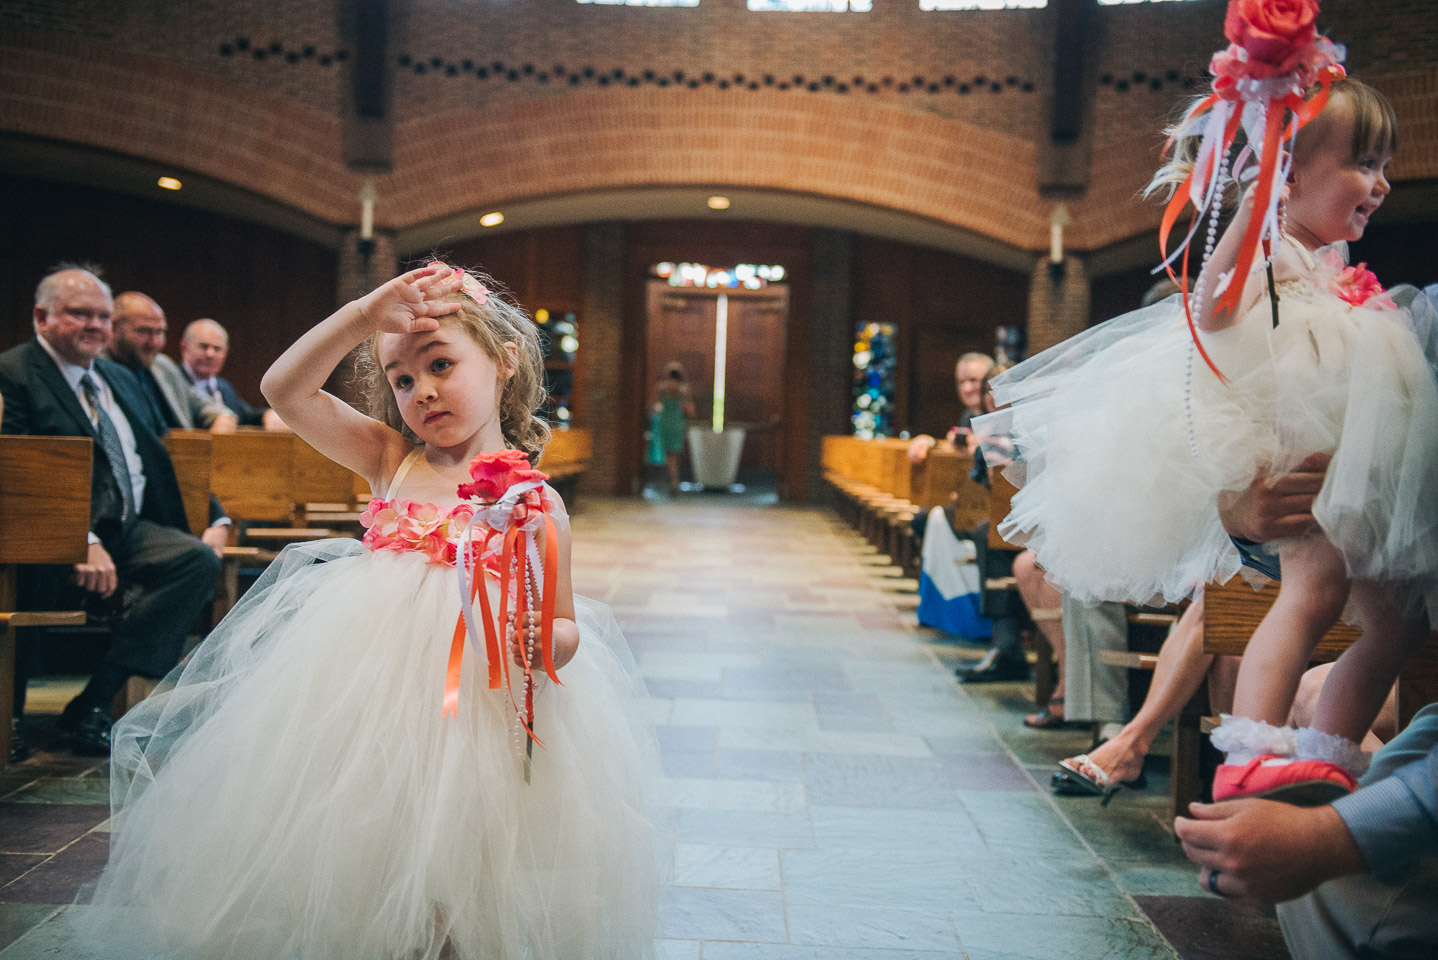 NH Wedding Photography: flower girl during processional